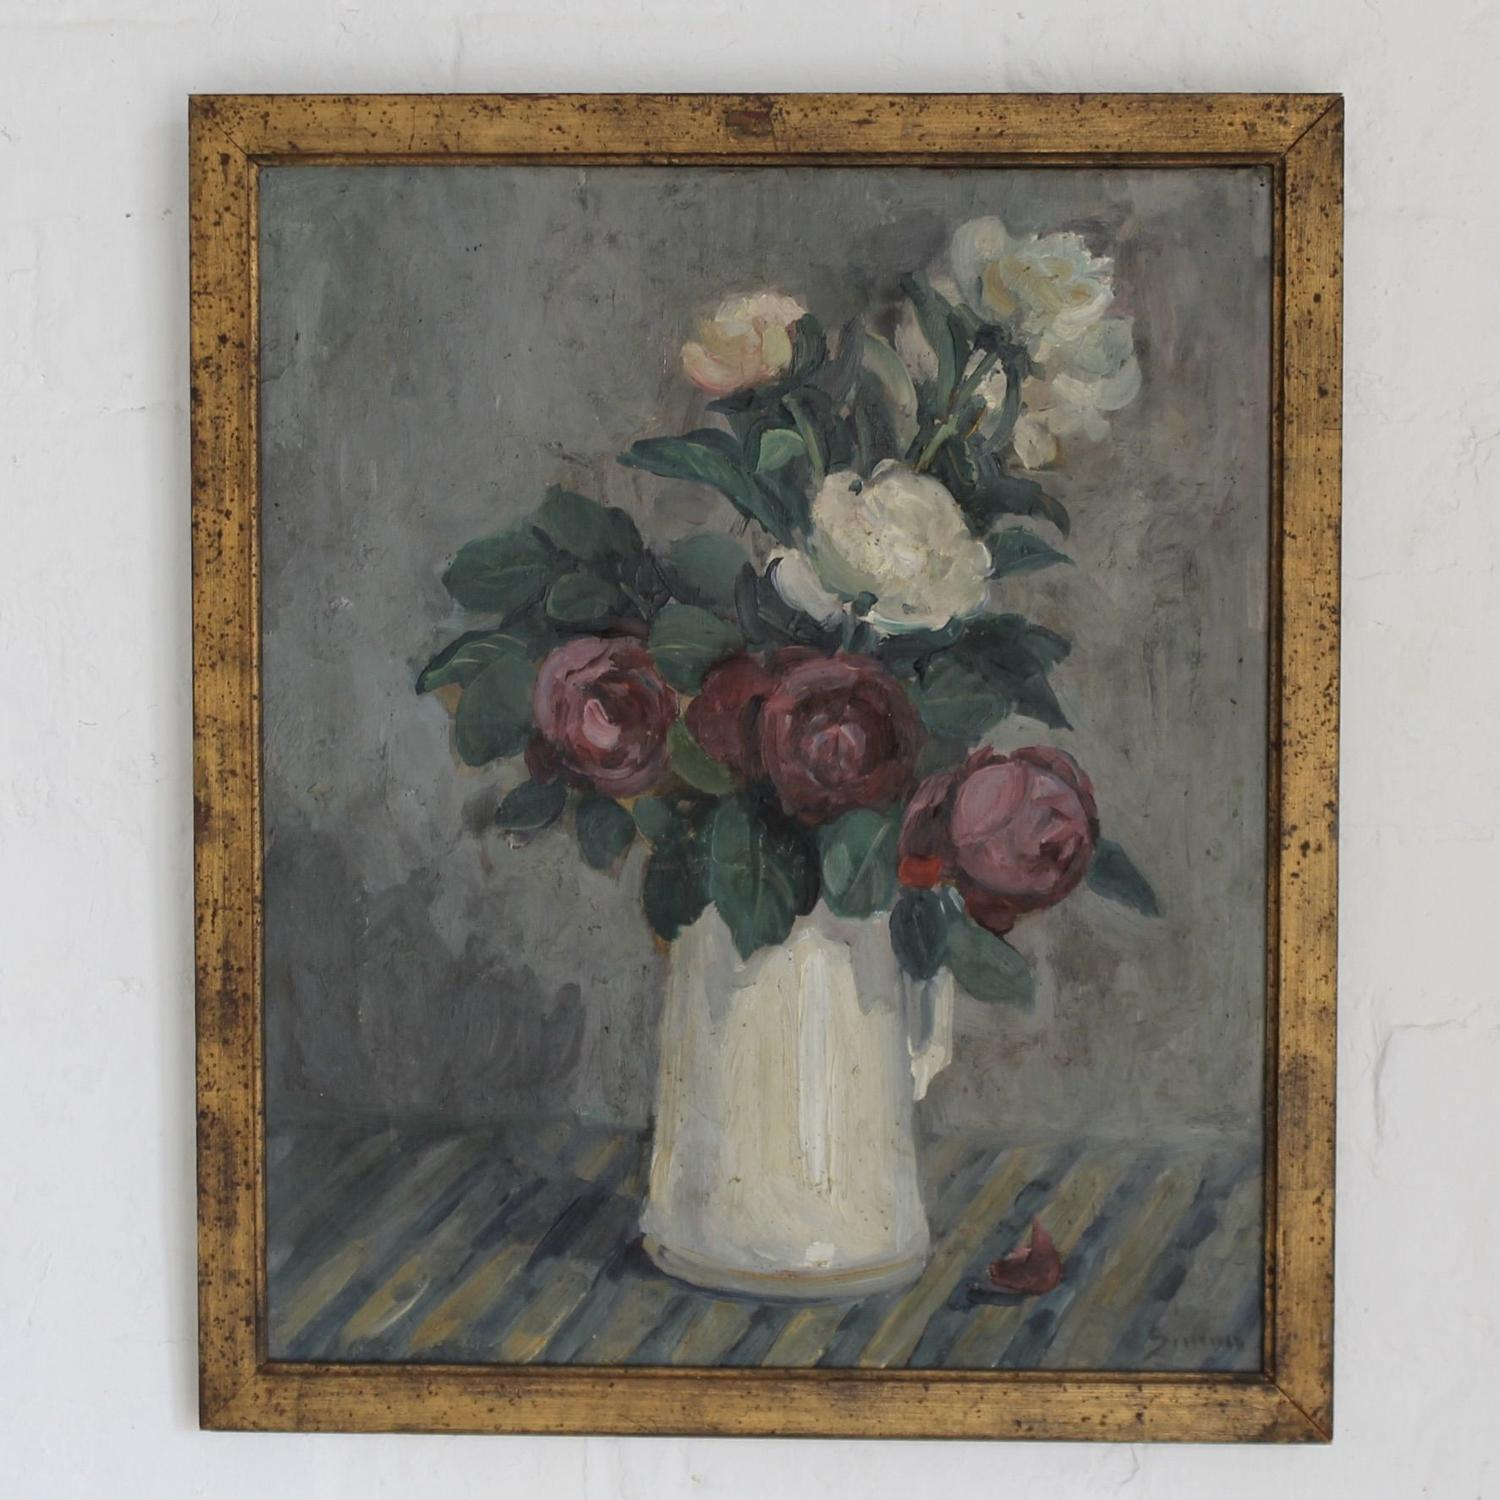 Roses and Peonies in Jug